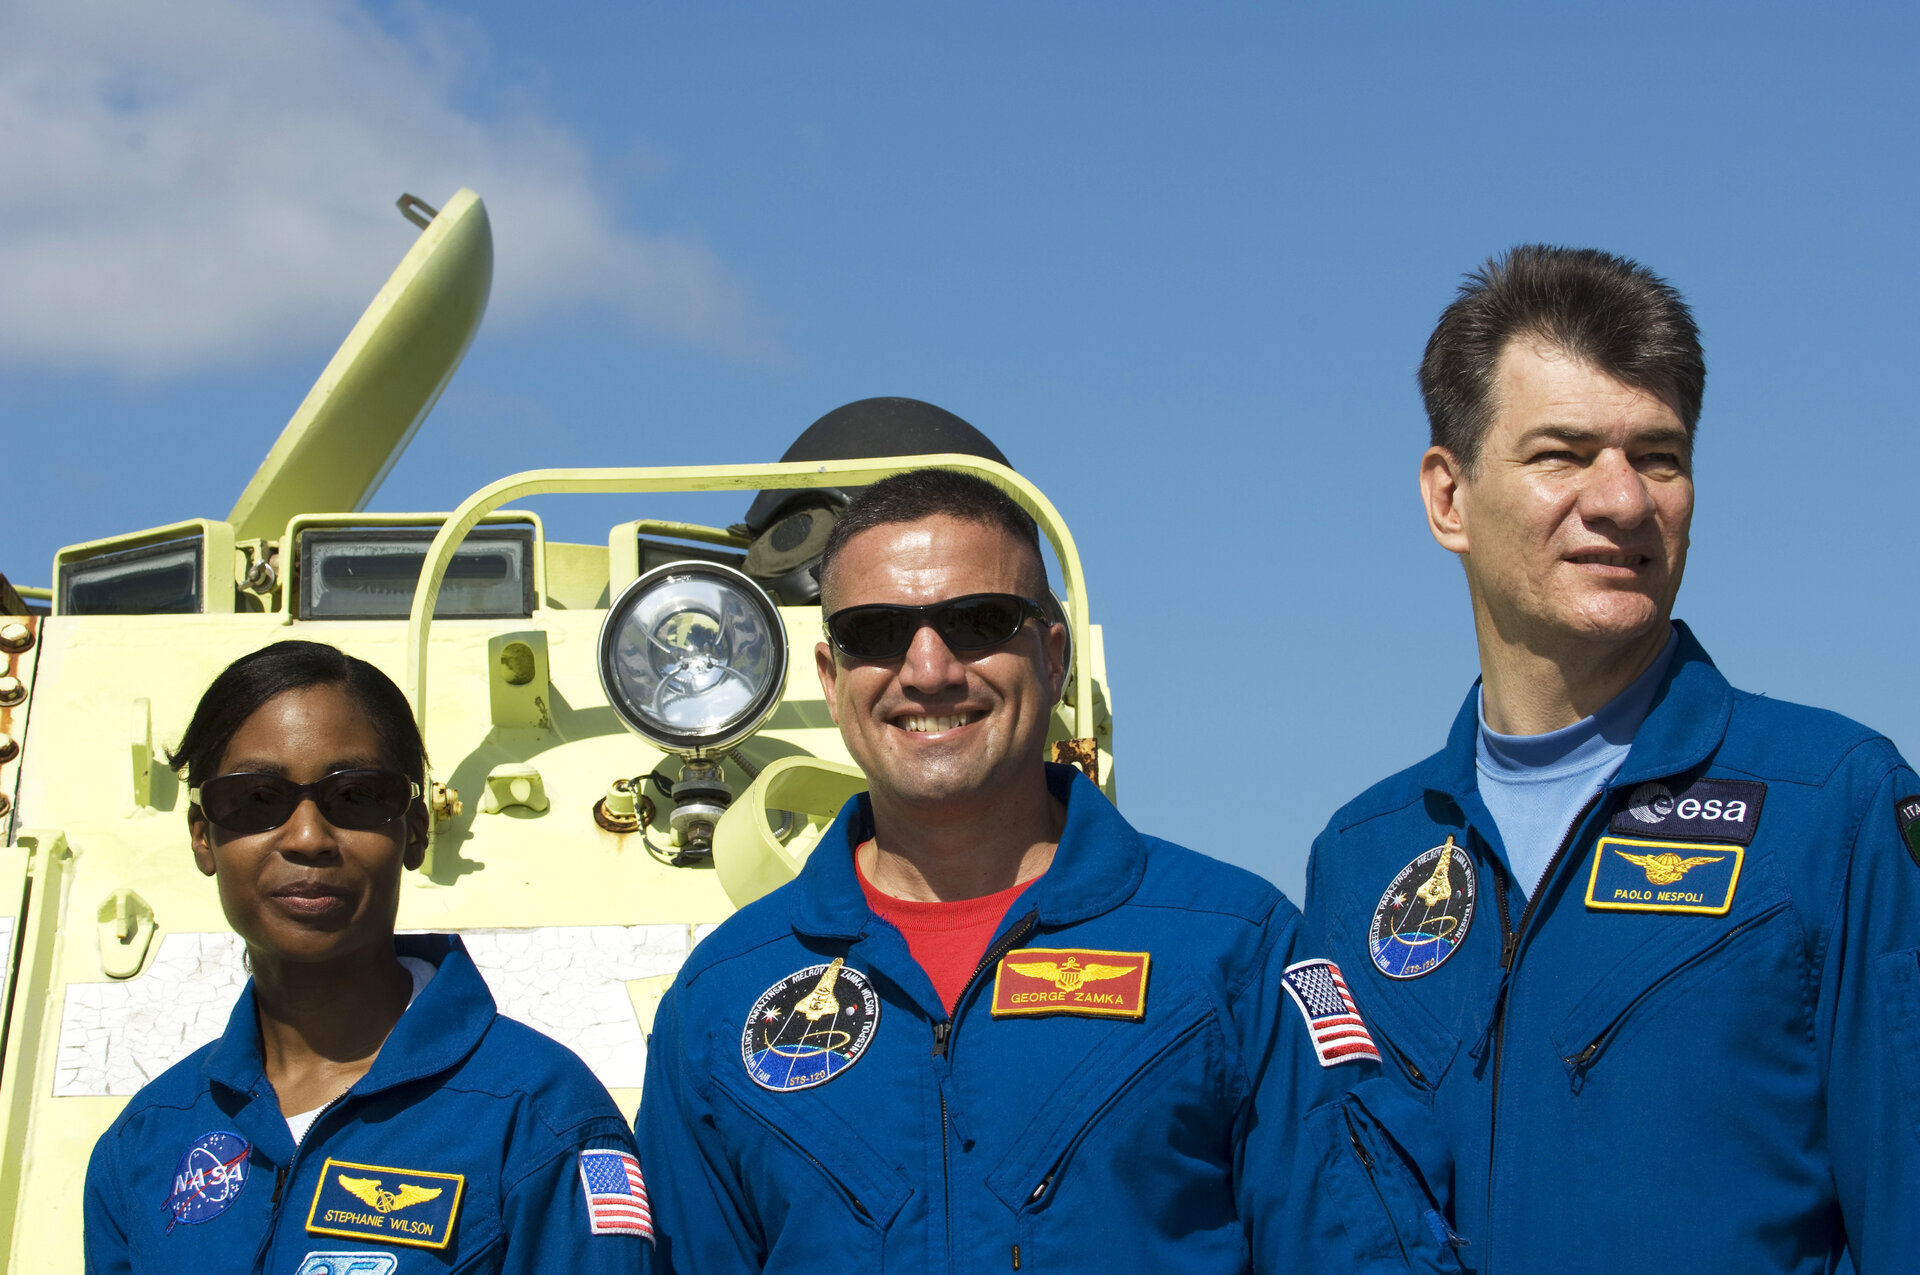 STS-120 crewmembers, Stephanie Wilson, George Zamka and Paolo Nespoli during M-113 training at KSC